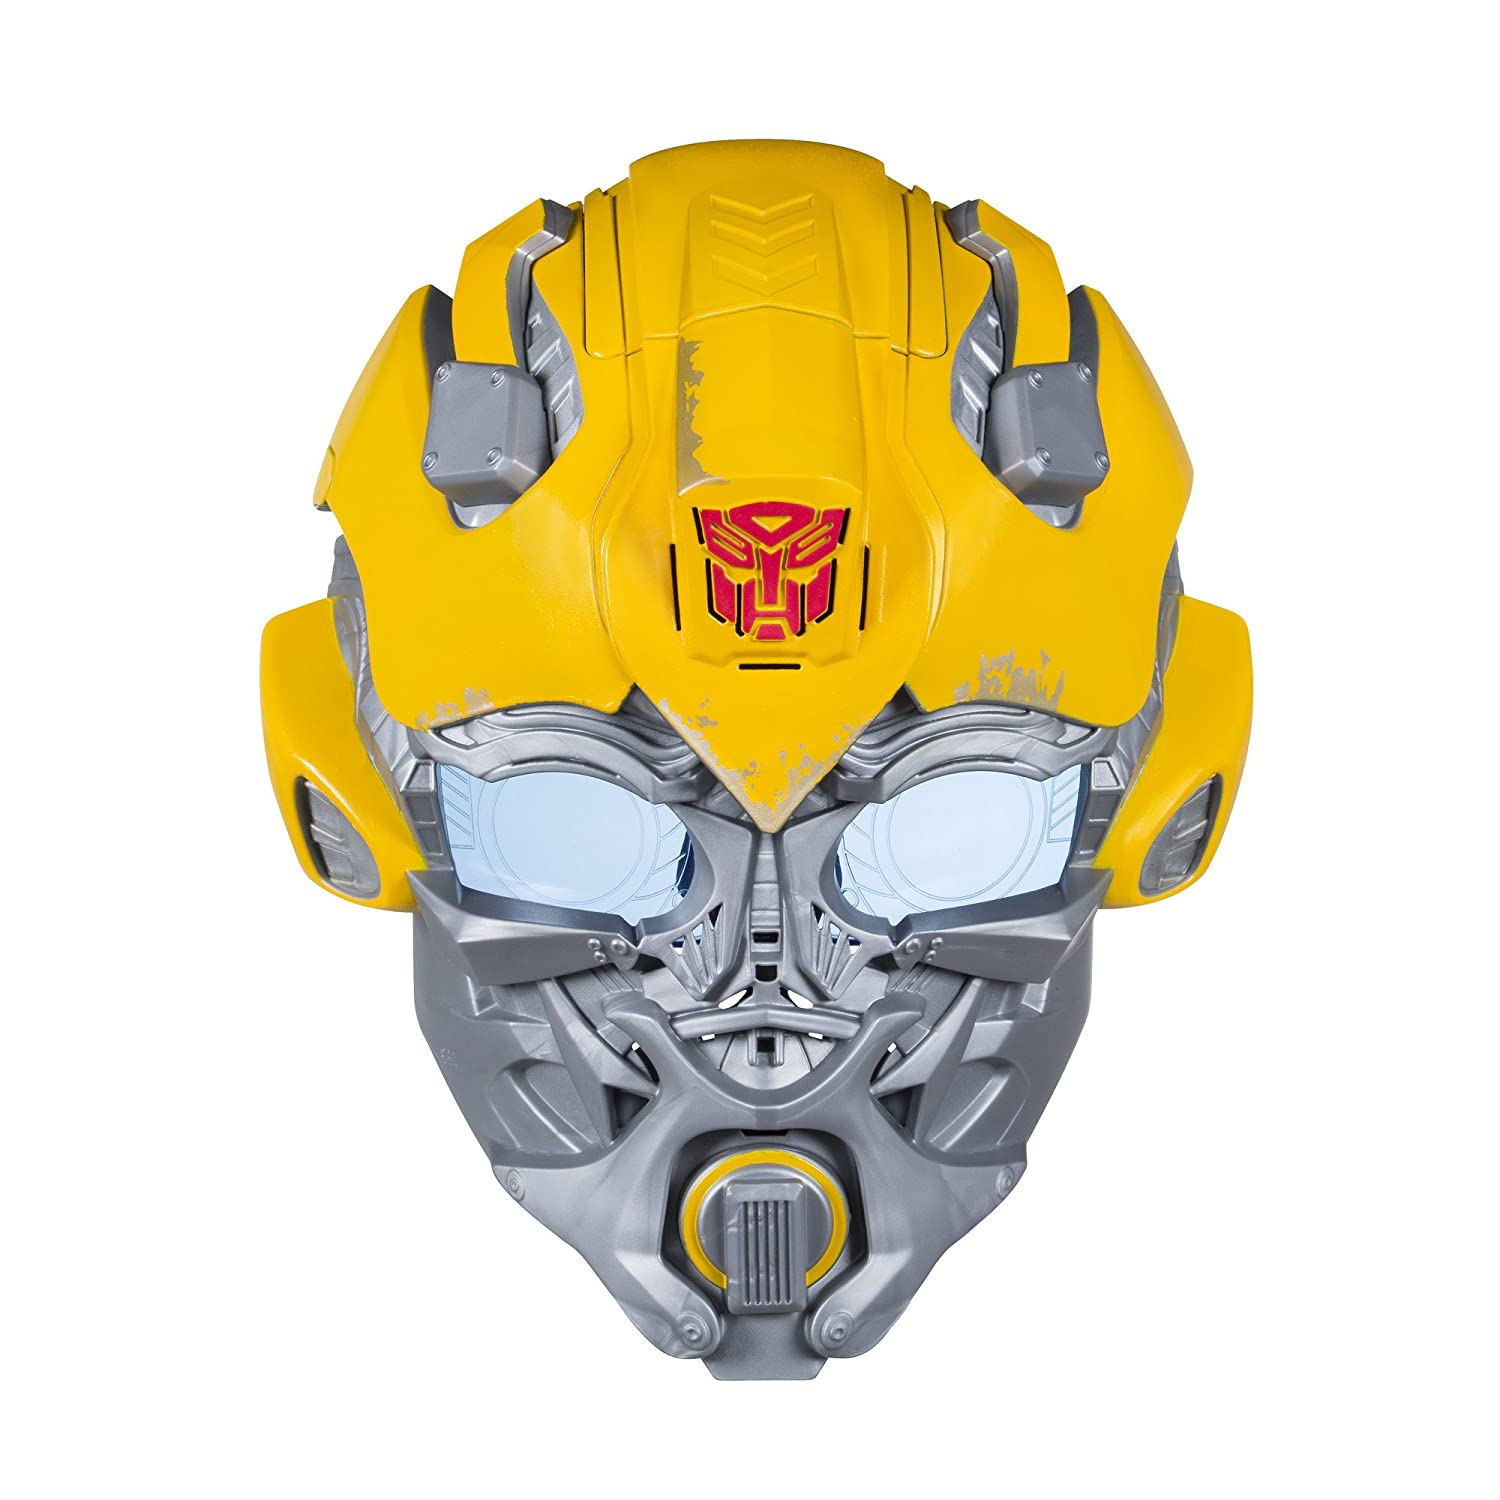 BUMBLEBEE Transformers The Last Knight Voice Changer Mask